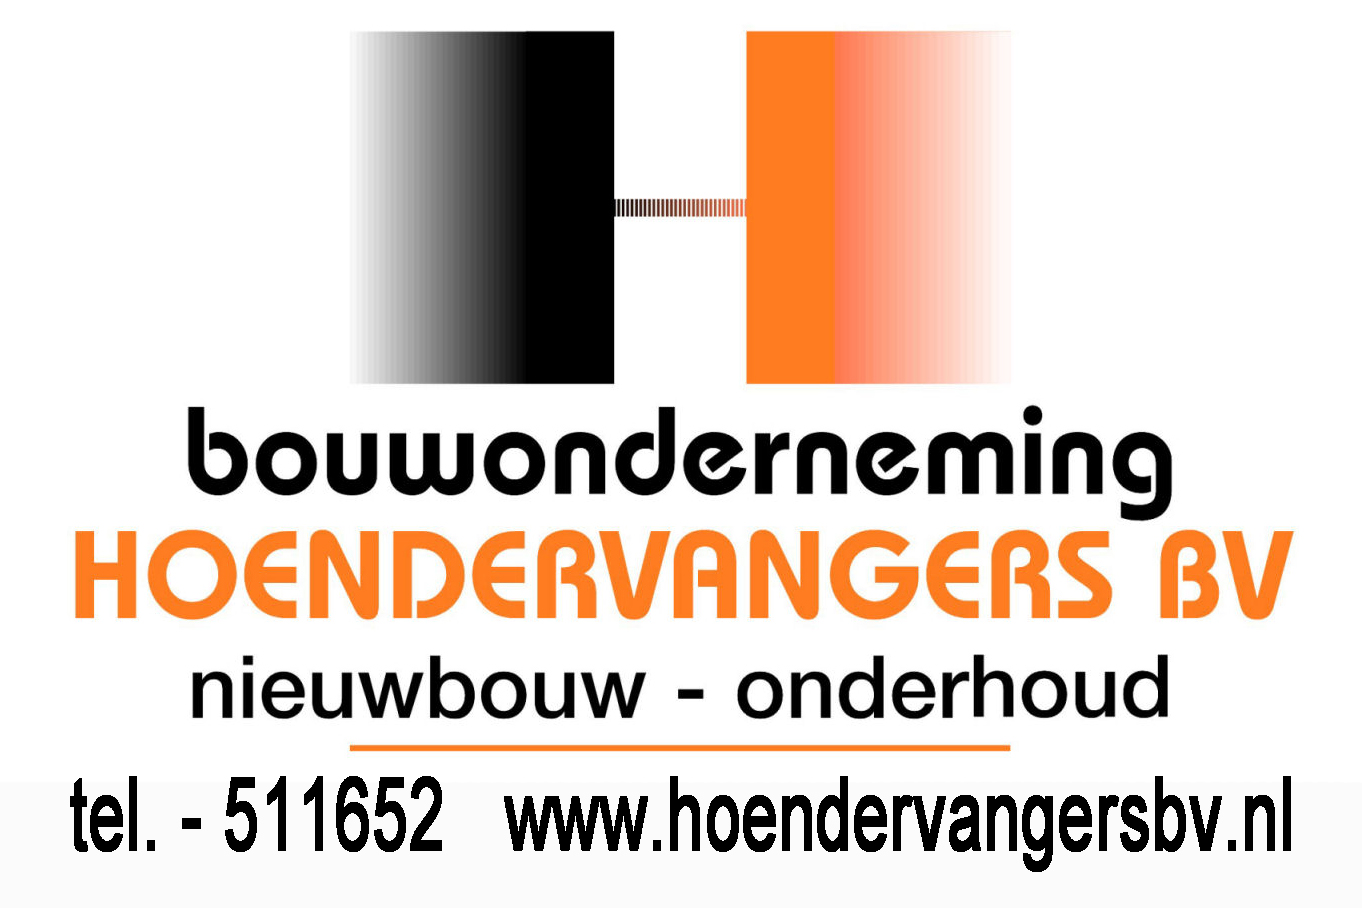 Hoendervangers advertentie logo